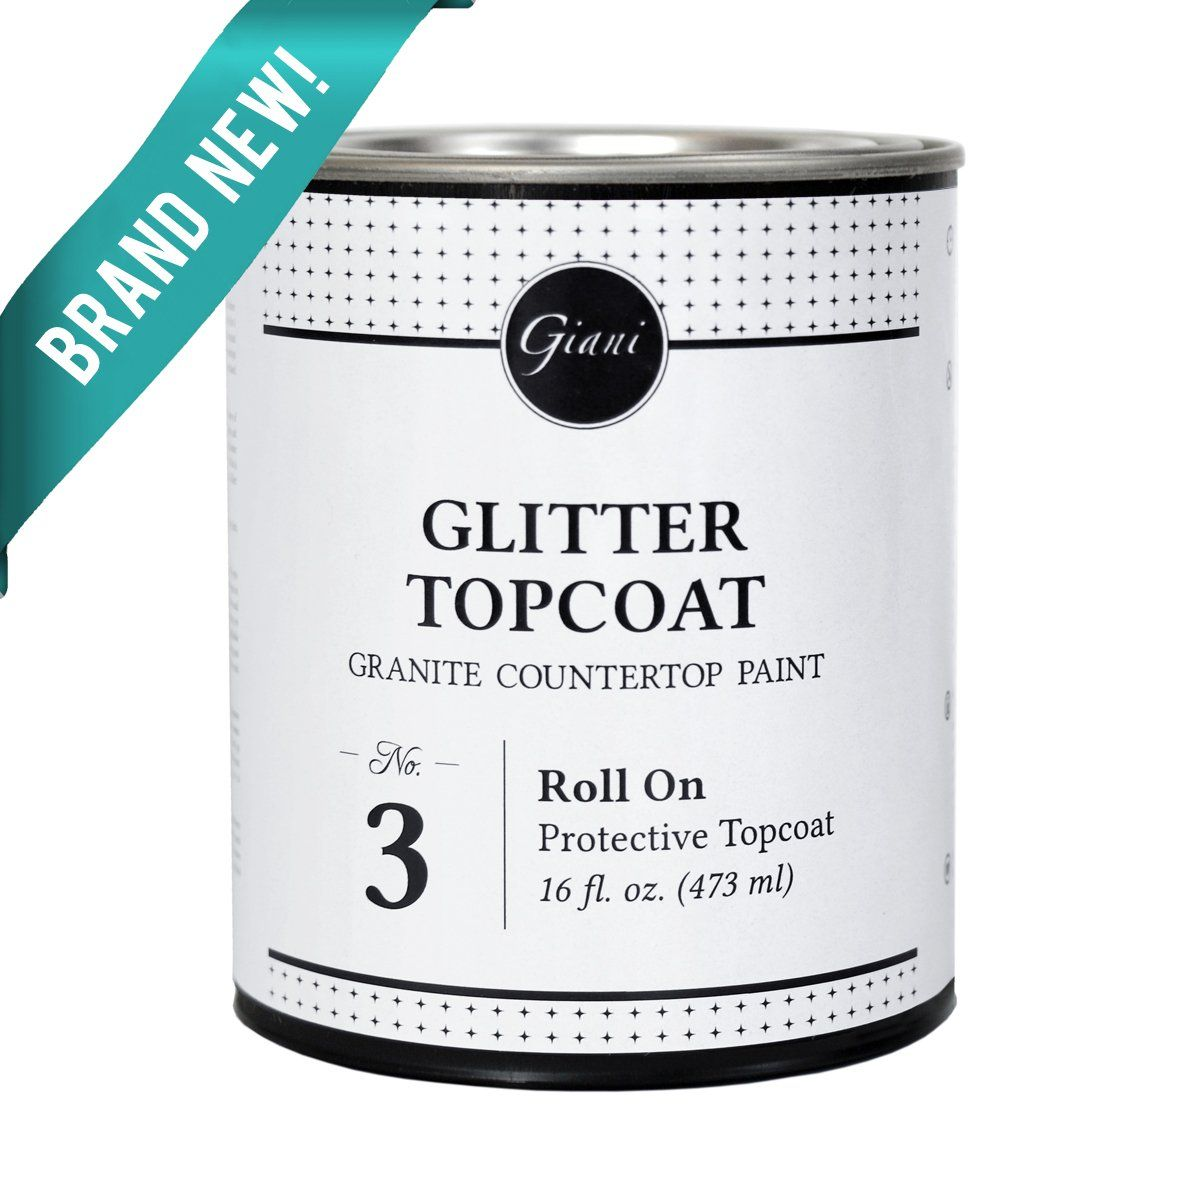 Glitter Topcoat For Giani Countertop Paint Kits Painting